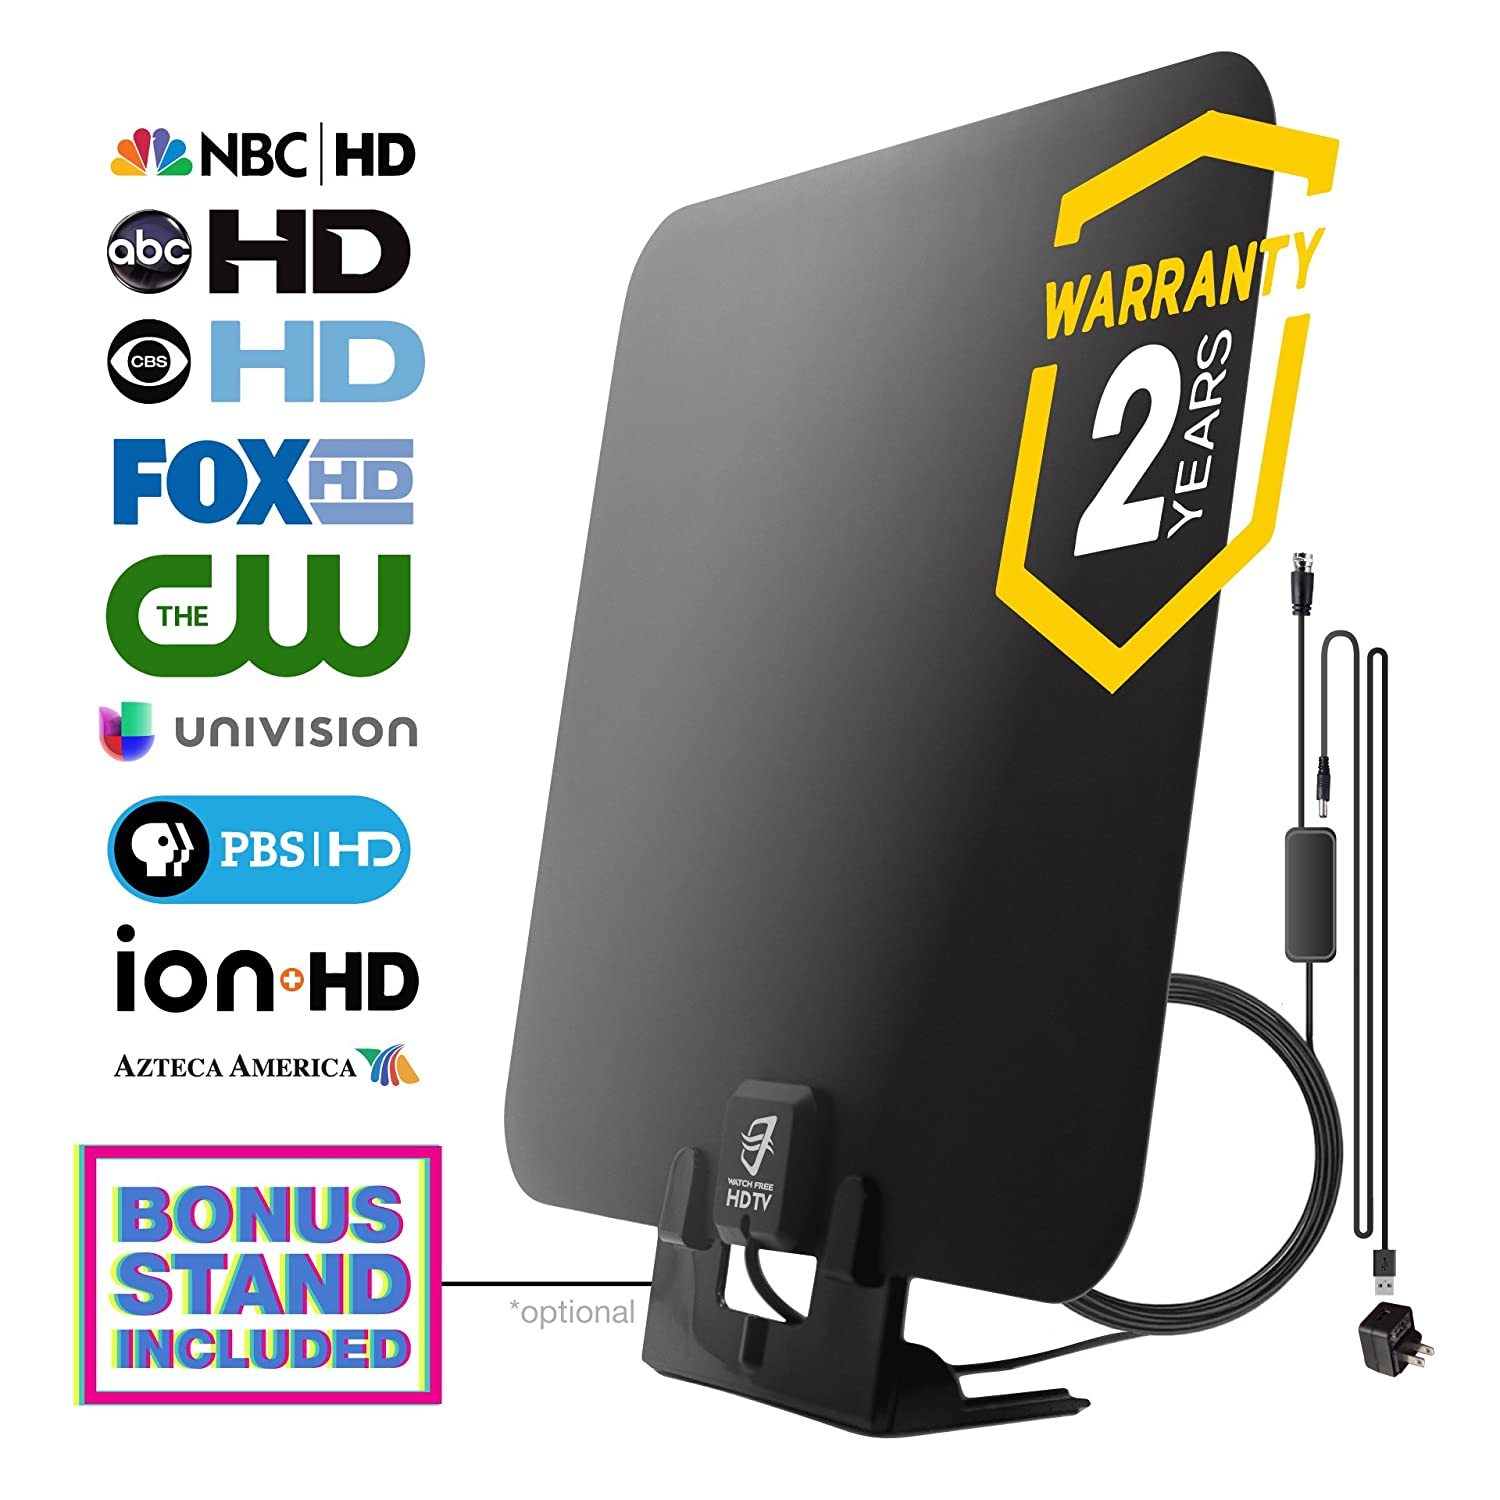 Top 10 Best HD TV Antenna Reviews 2018-2019 - cover